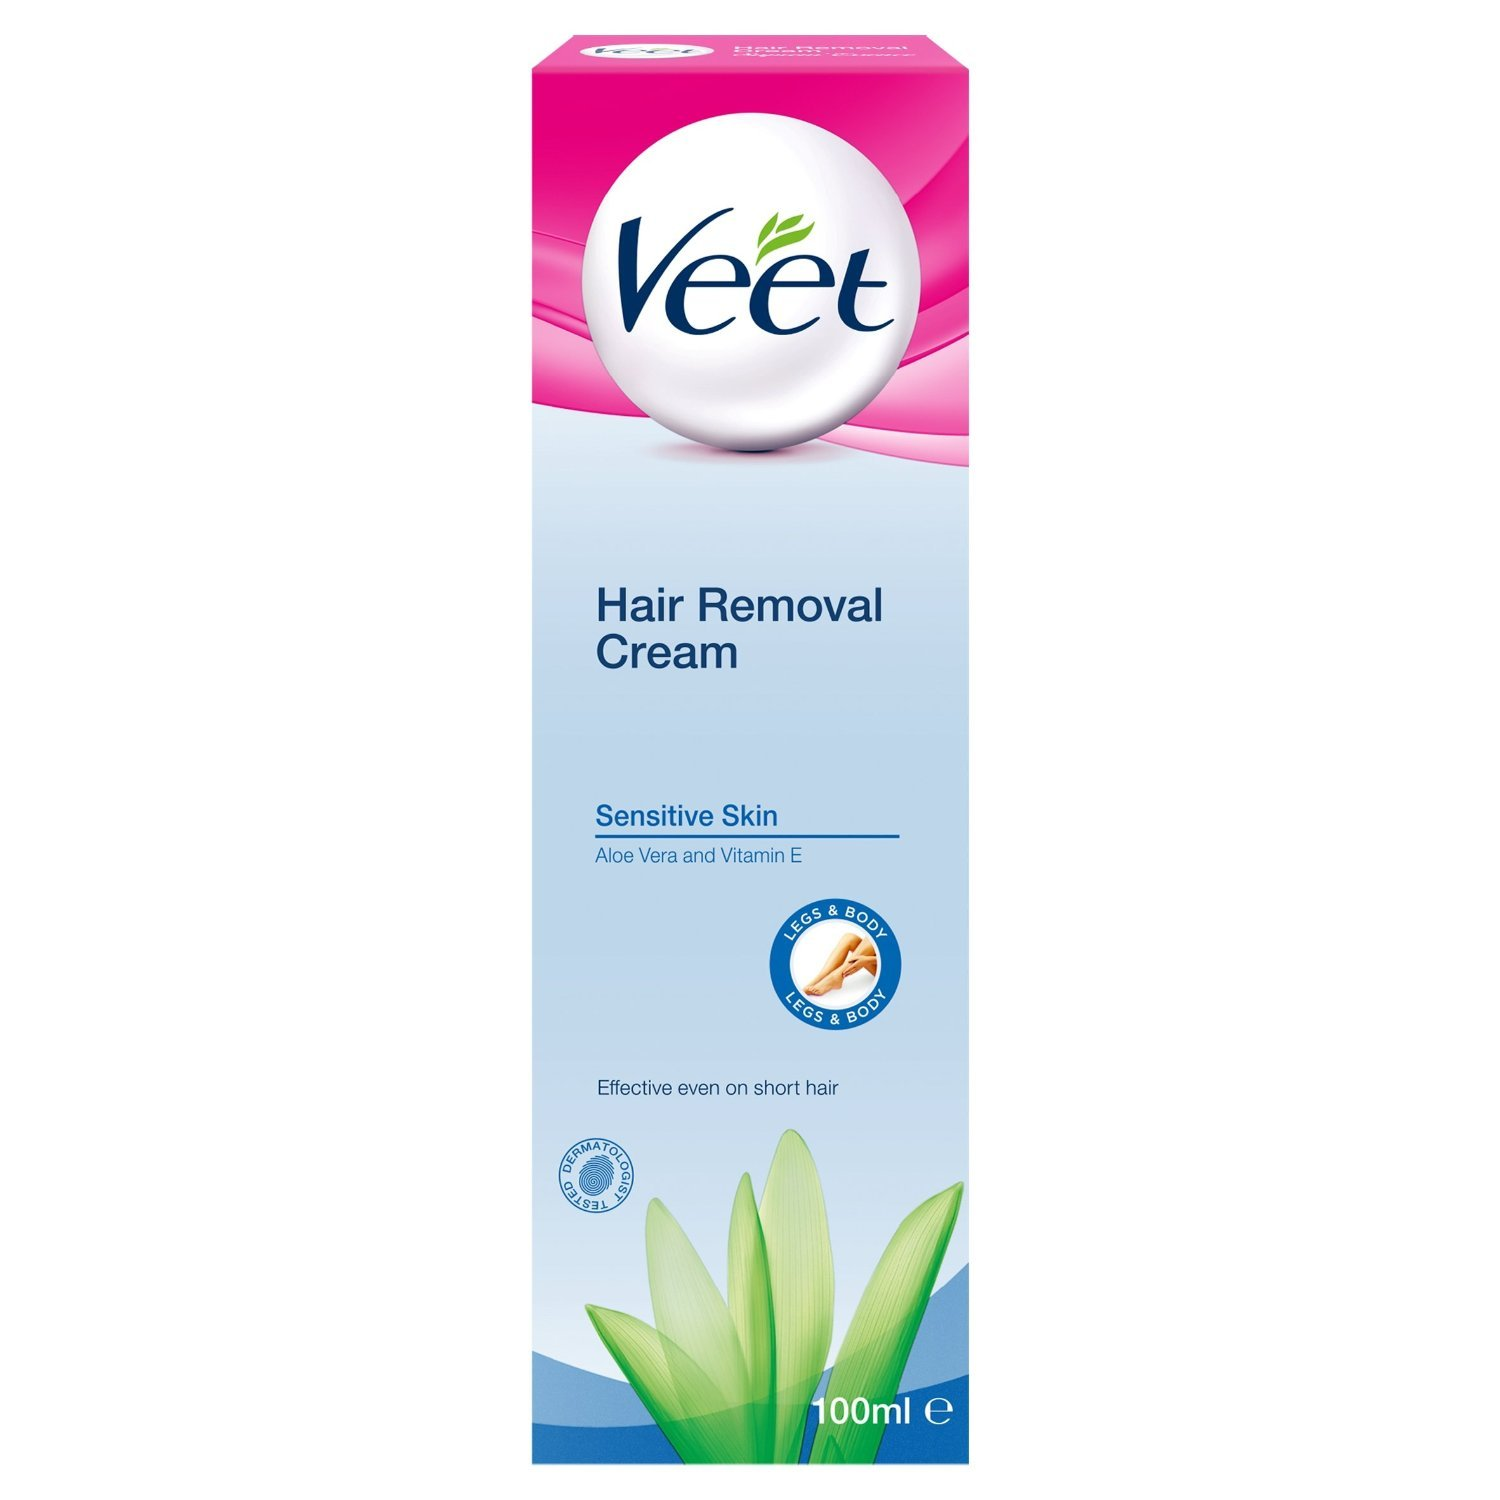 Veet Hair Removal Cream For Sensitive Skin With Aloe Vera & Vitamin E 100ml (2 Packs)